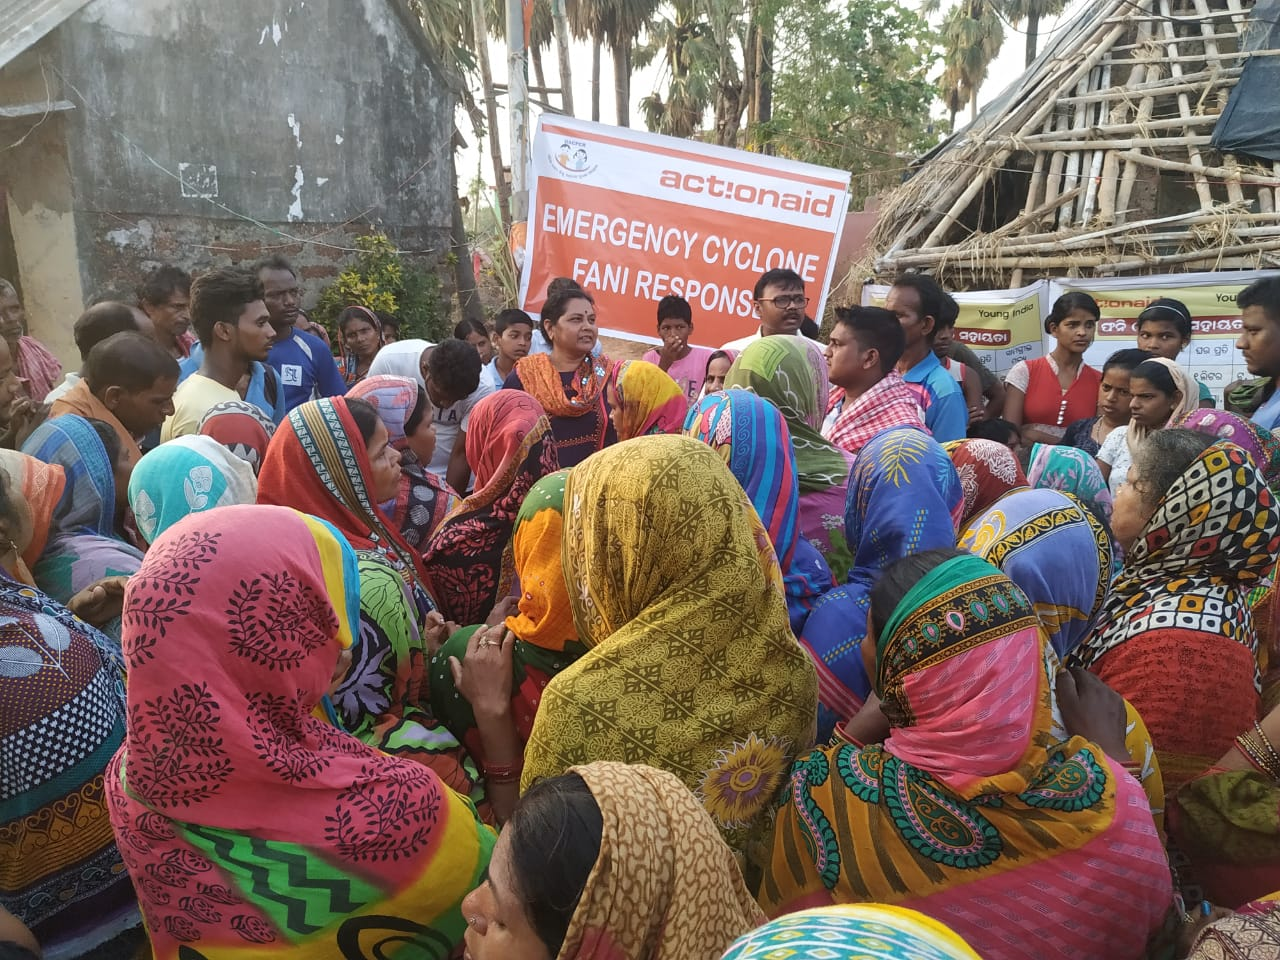 ActionAid India provide emergency relief after Cyclone Fani in May 2019.